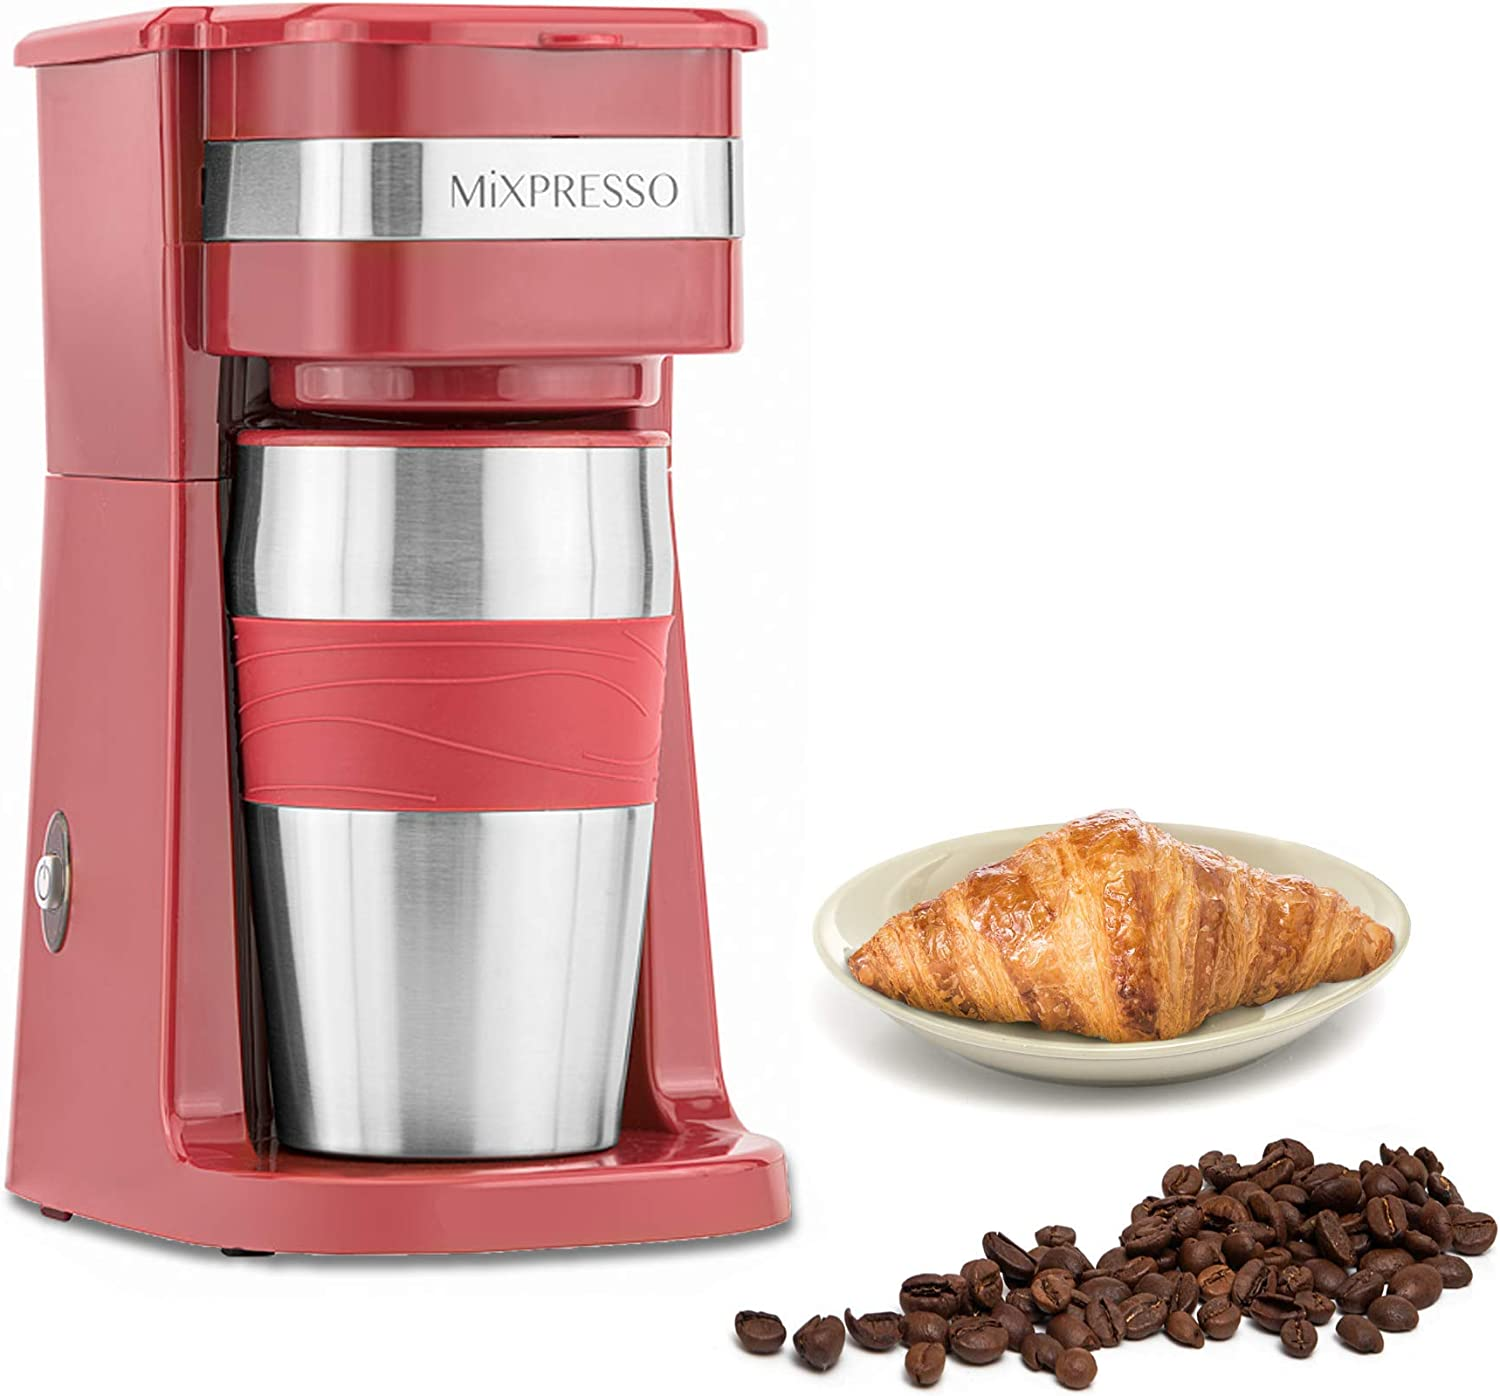 Ultimate 2-In-1 Single Cup Coffee Maker & 14oz Travel Mug Combo | Portable & Lightweight Personal Drip Coffee Brewer & Tumbler Advanced Auto Shut Off Function & Reusable Eco-Friendly Filter (Red)